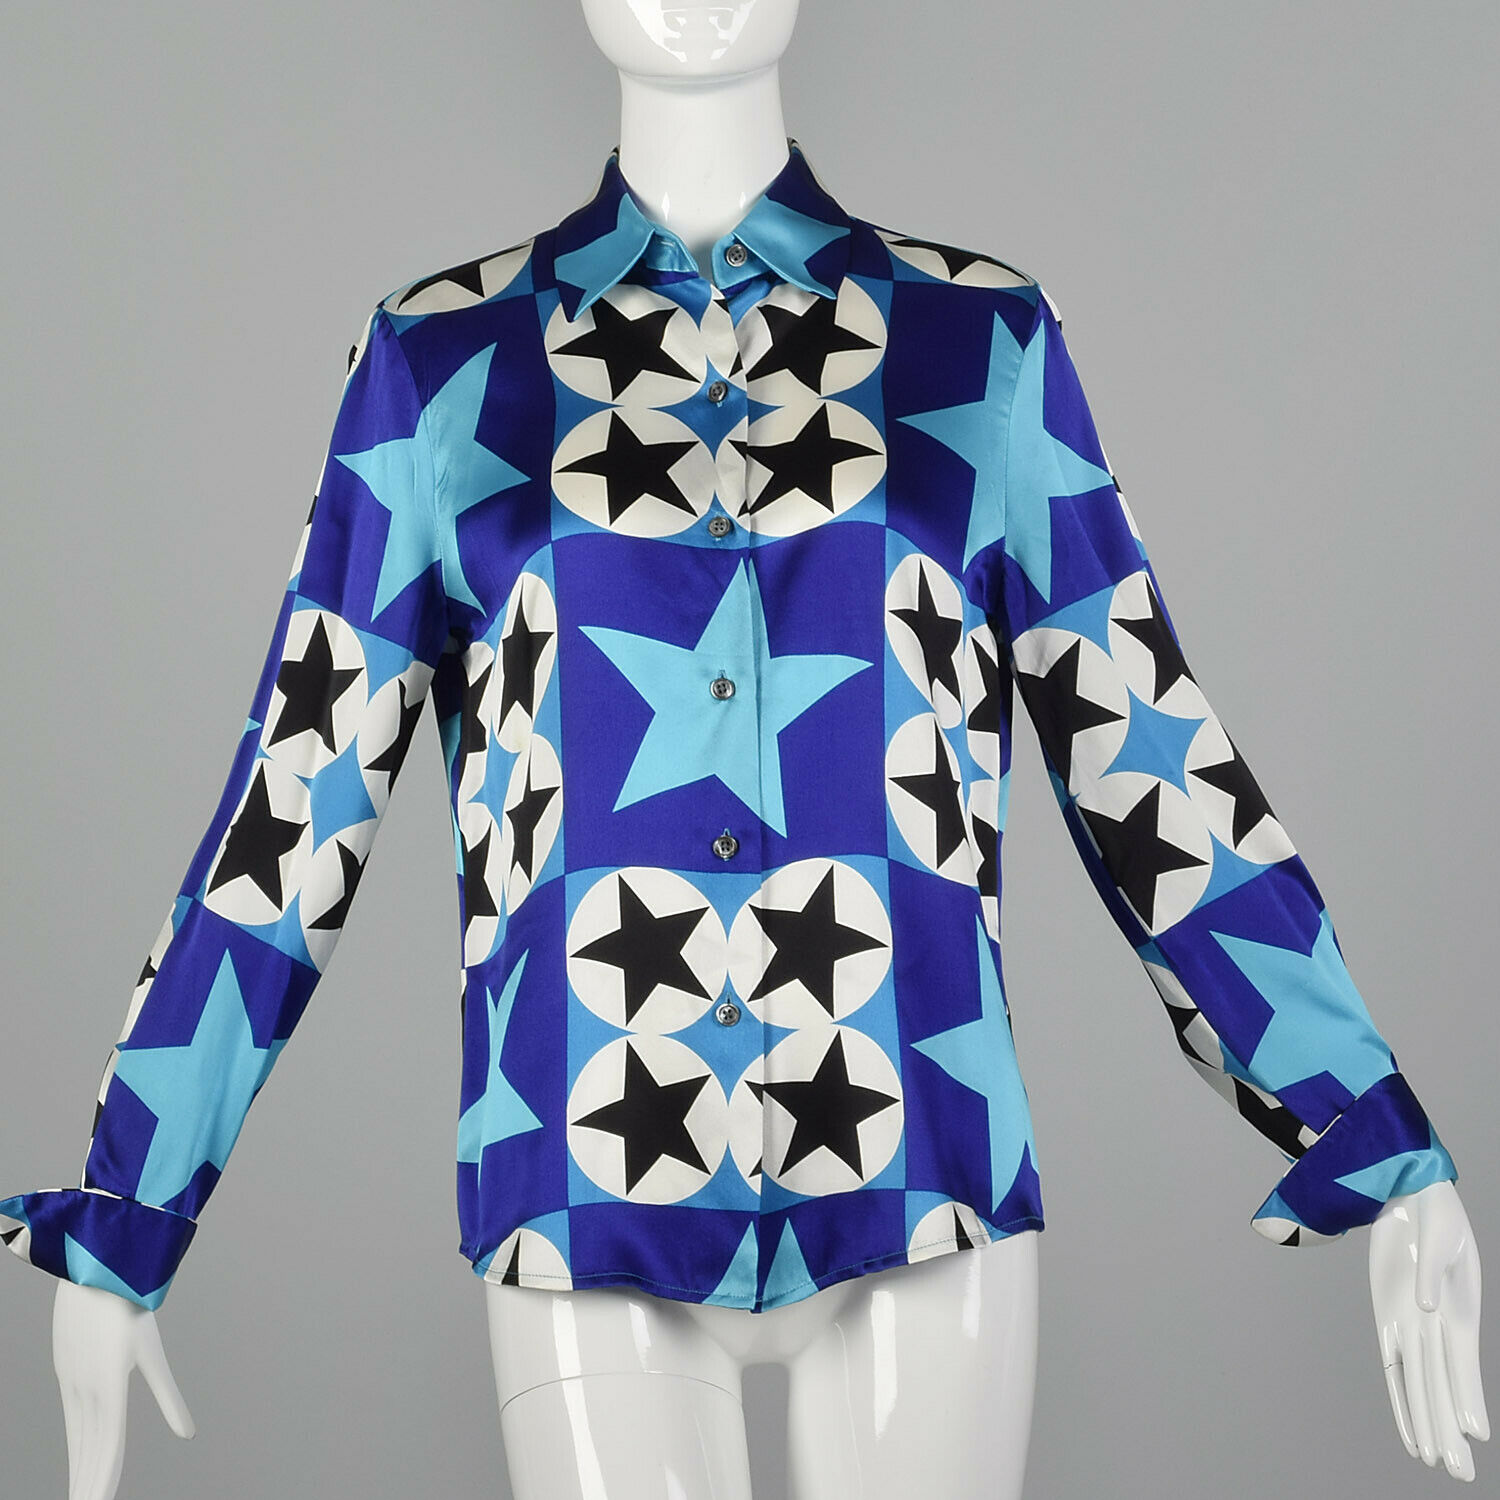 Medium Ellen Tracy 1990s Silk Star Print Blouse Vintage Graphic 90s Designer Top